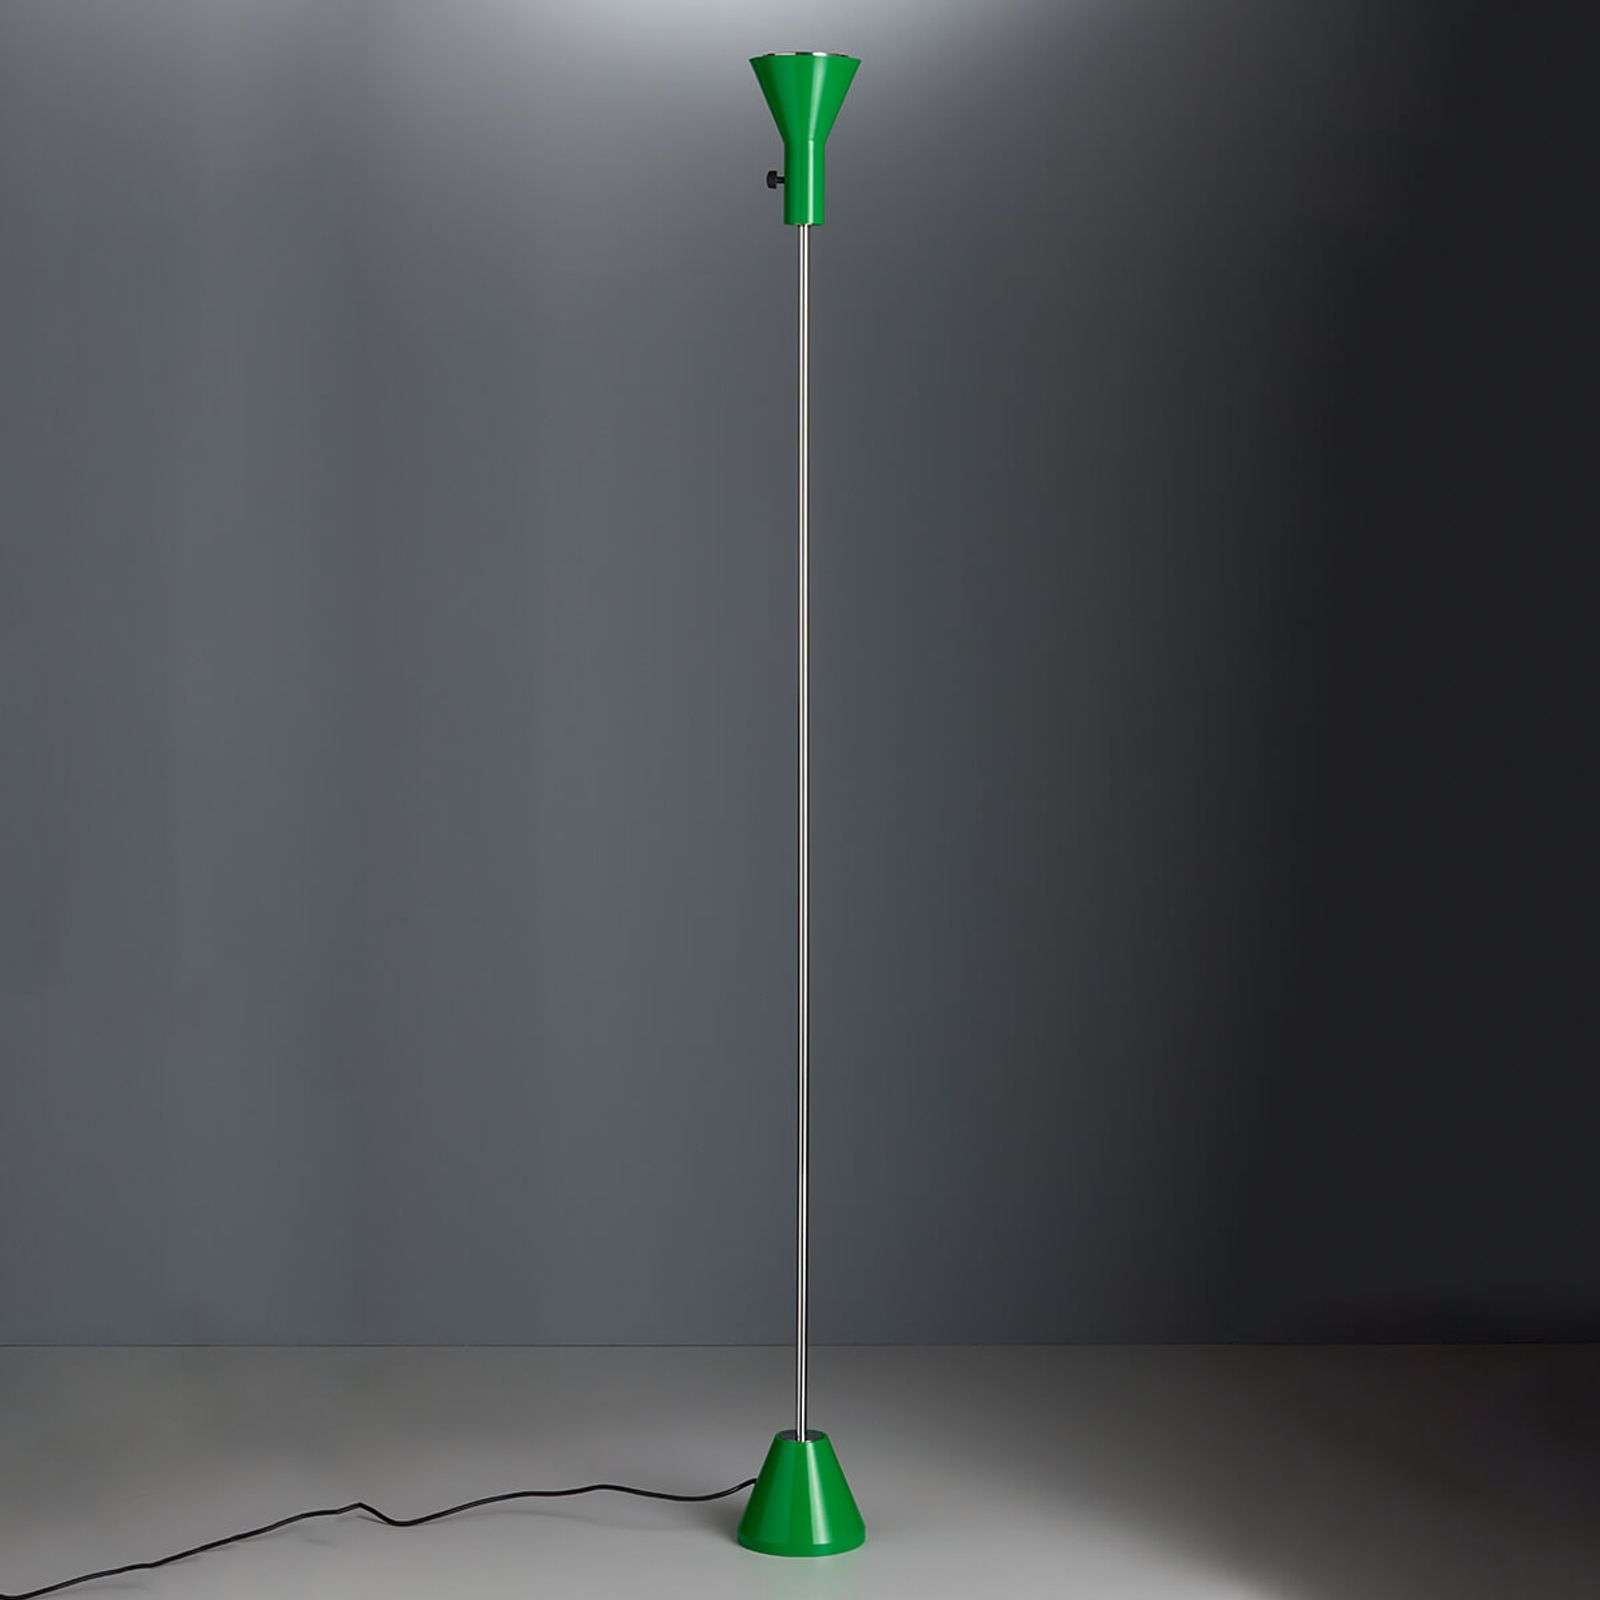 Lampadaire LED vert Gru, dimmable